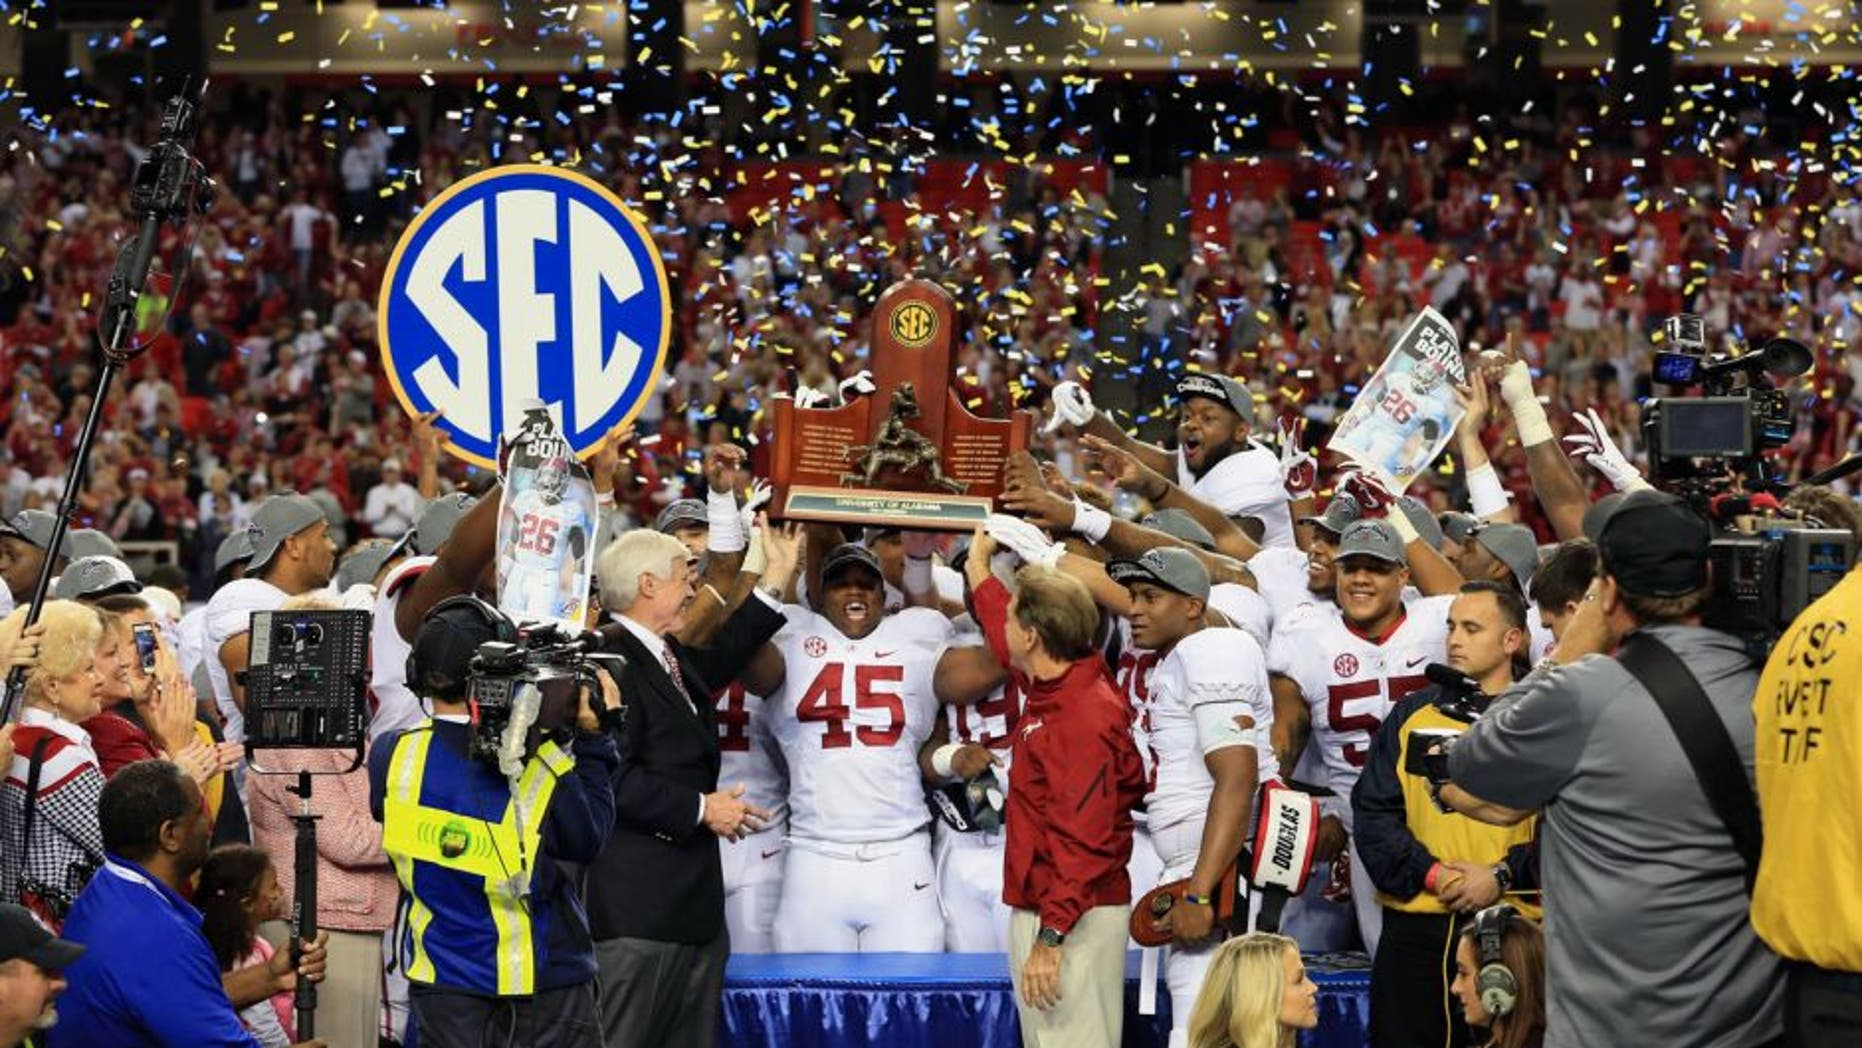 Dec 6, 2014; Atlanta, GA, USA; Alabama Crimson Tide head coach Nick Saban and his team celebrate with the trophy after the 2014 SEC Championship Game against the Missouri Tigers at the Georgia Dome. Alabama defeated Missouri 42-13. Mandatory Credit: Kevin Liles-USA TODAY Sports